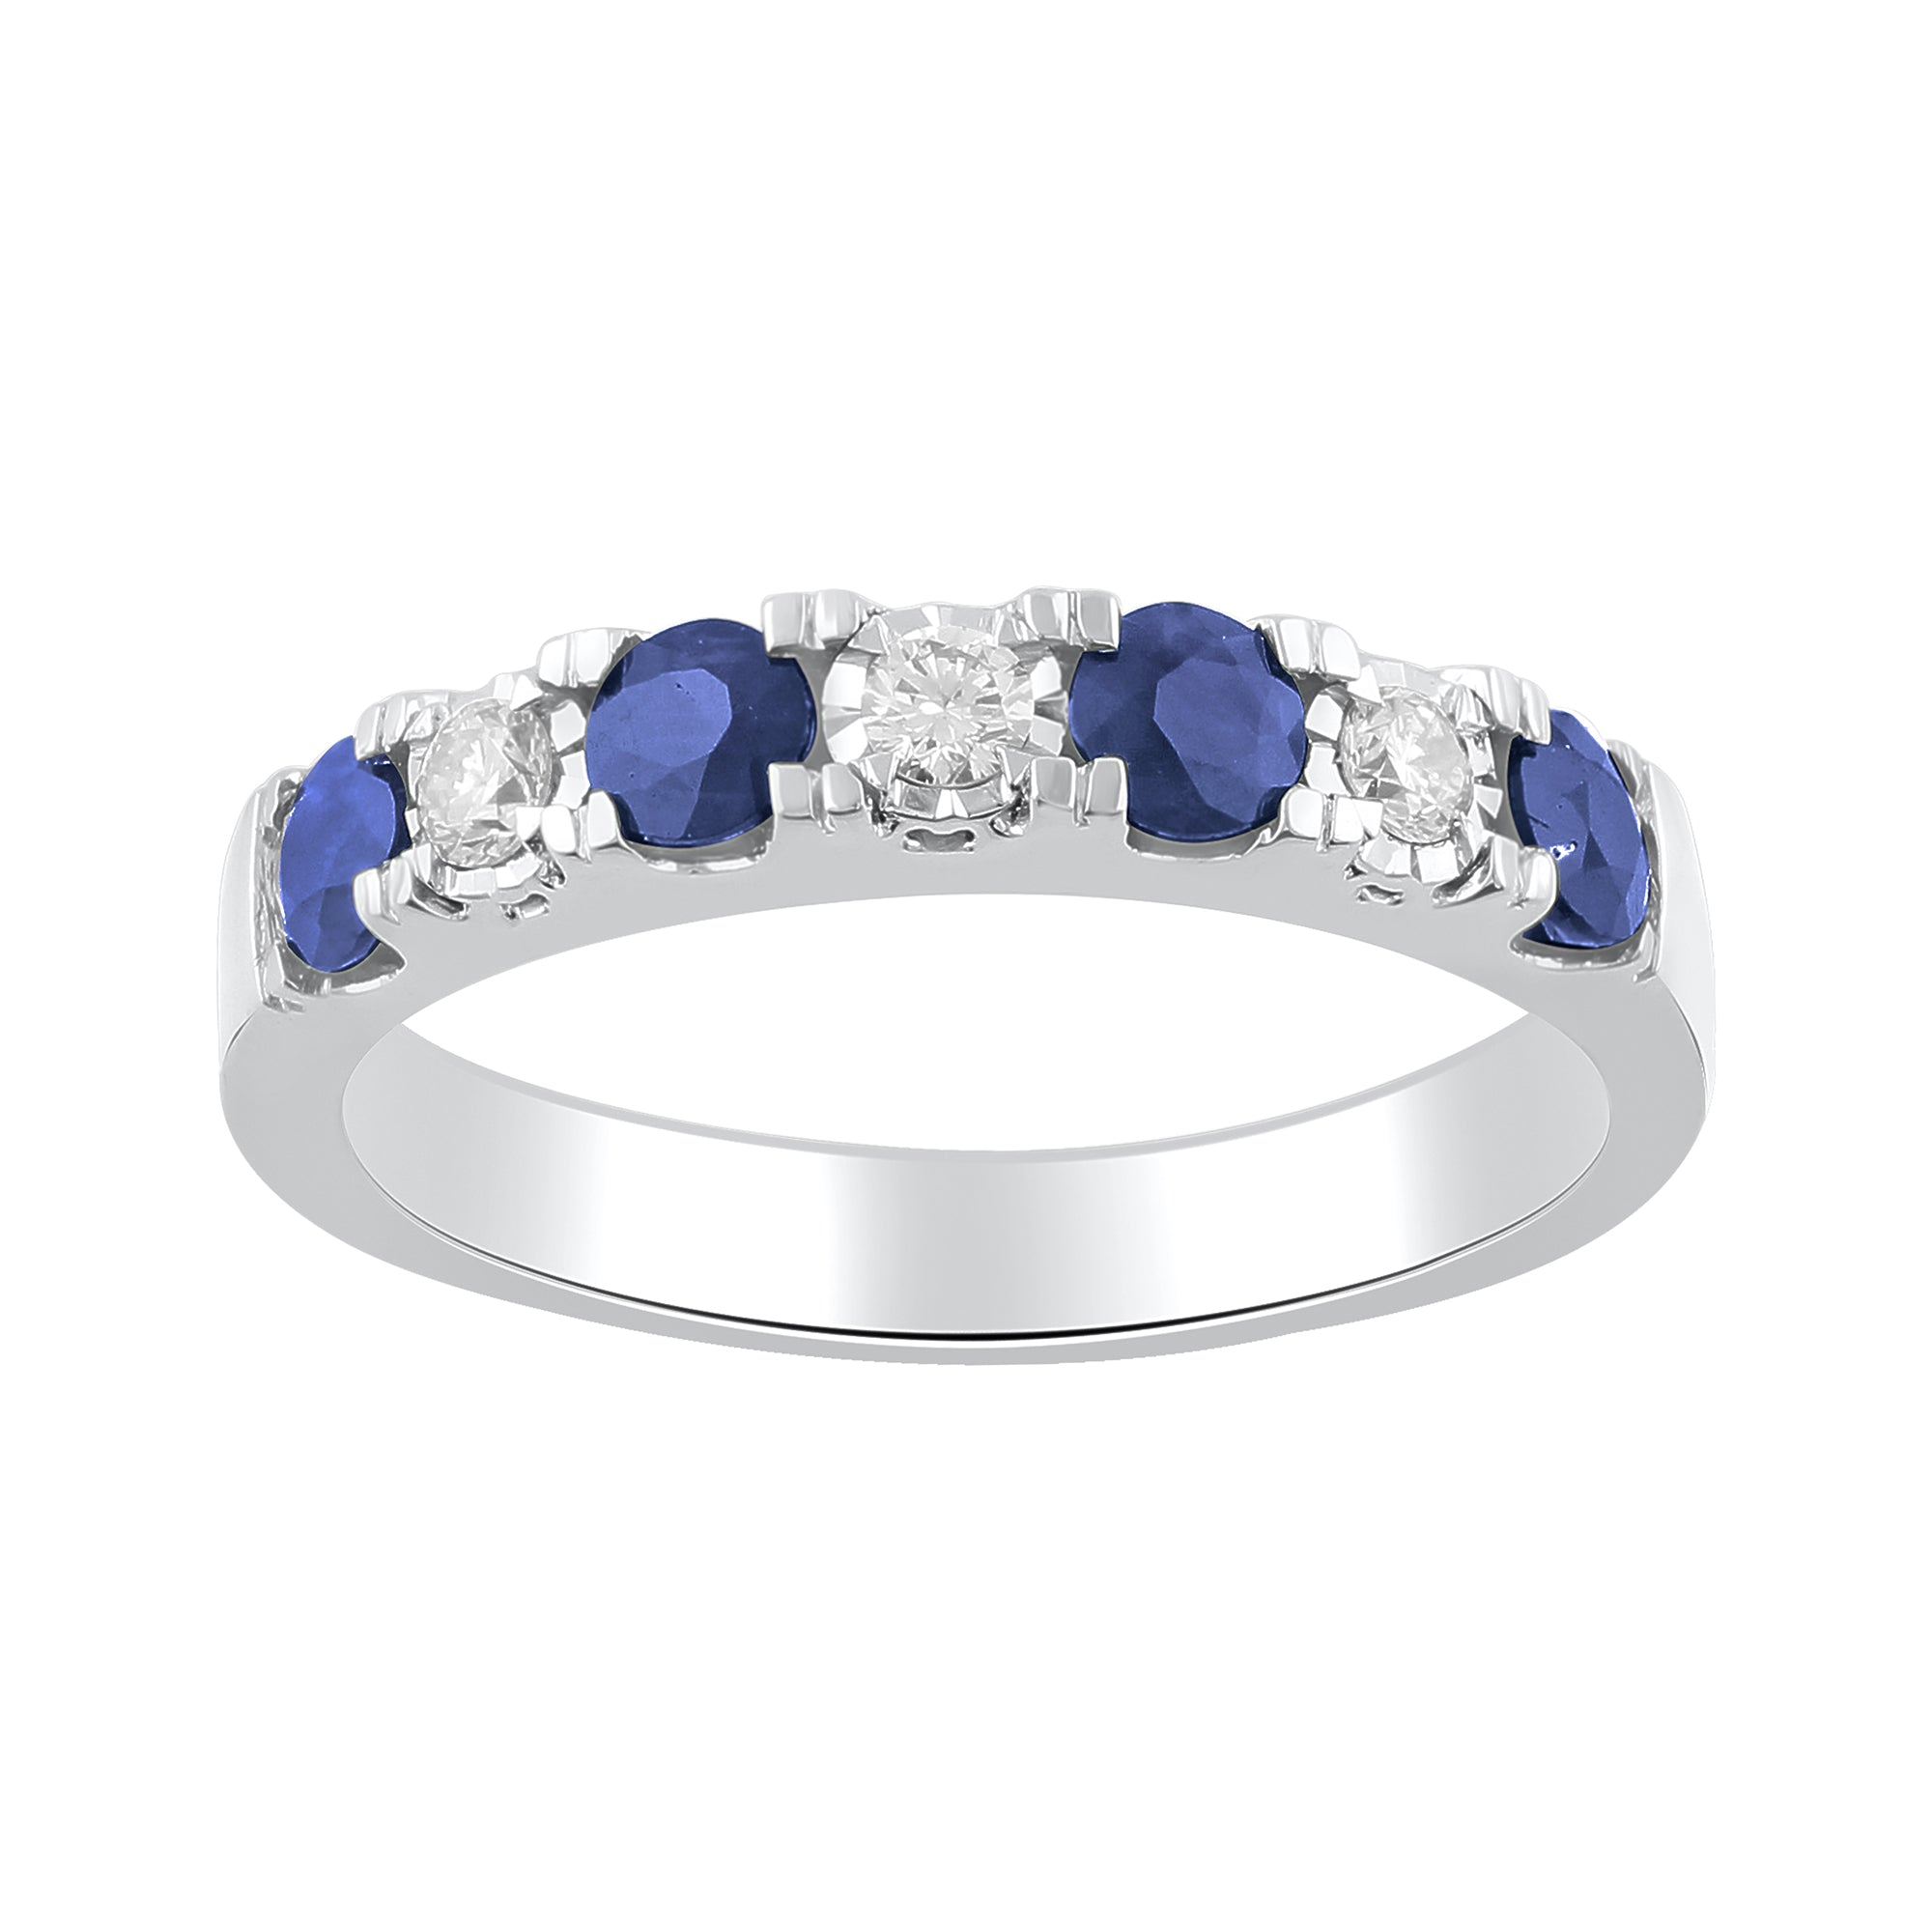 Sapphire and Diamond Anniversary Band in 14k White Gold - Talisman Collection Fine Jewelers